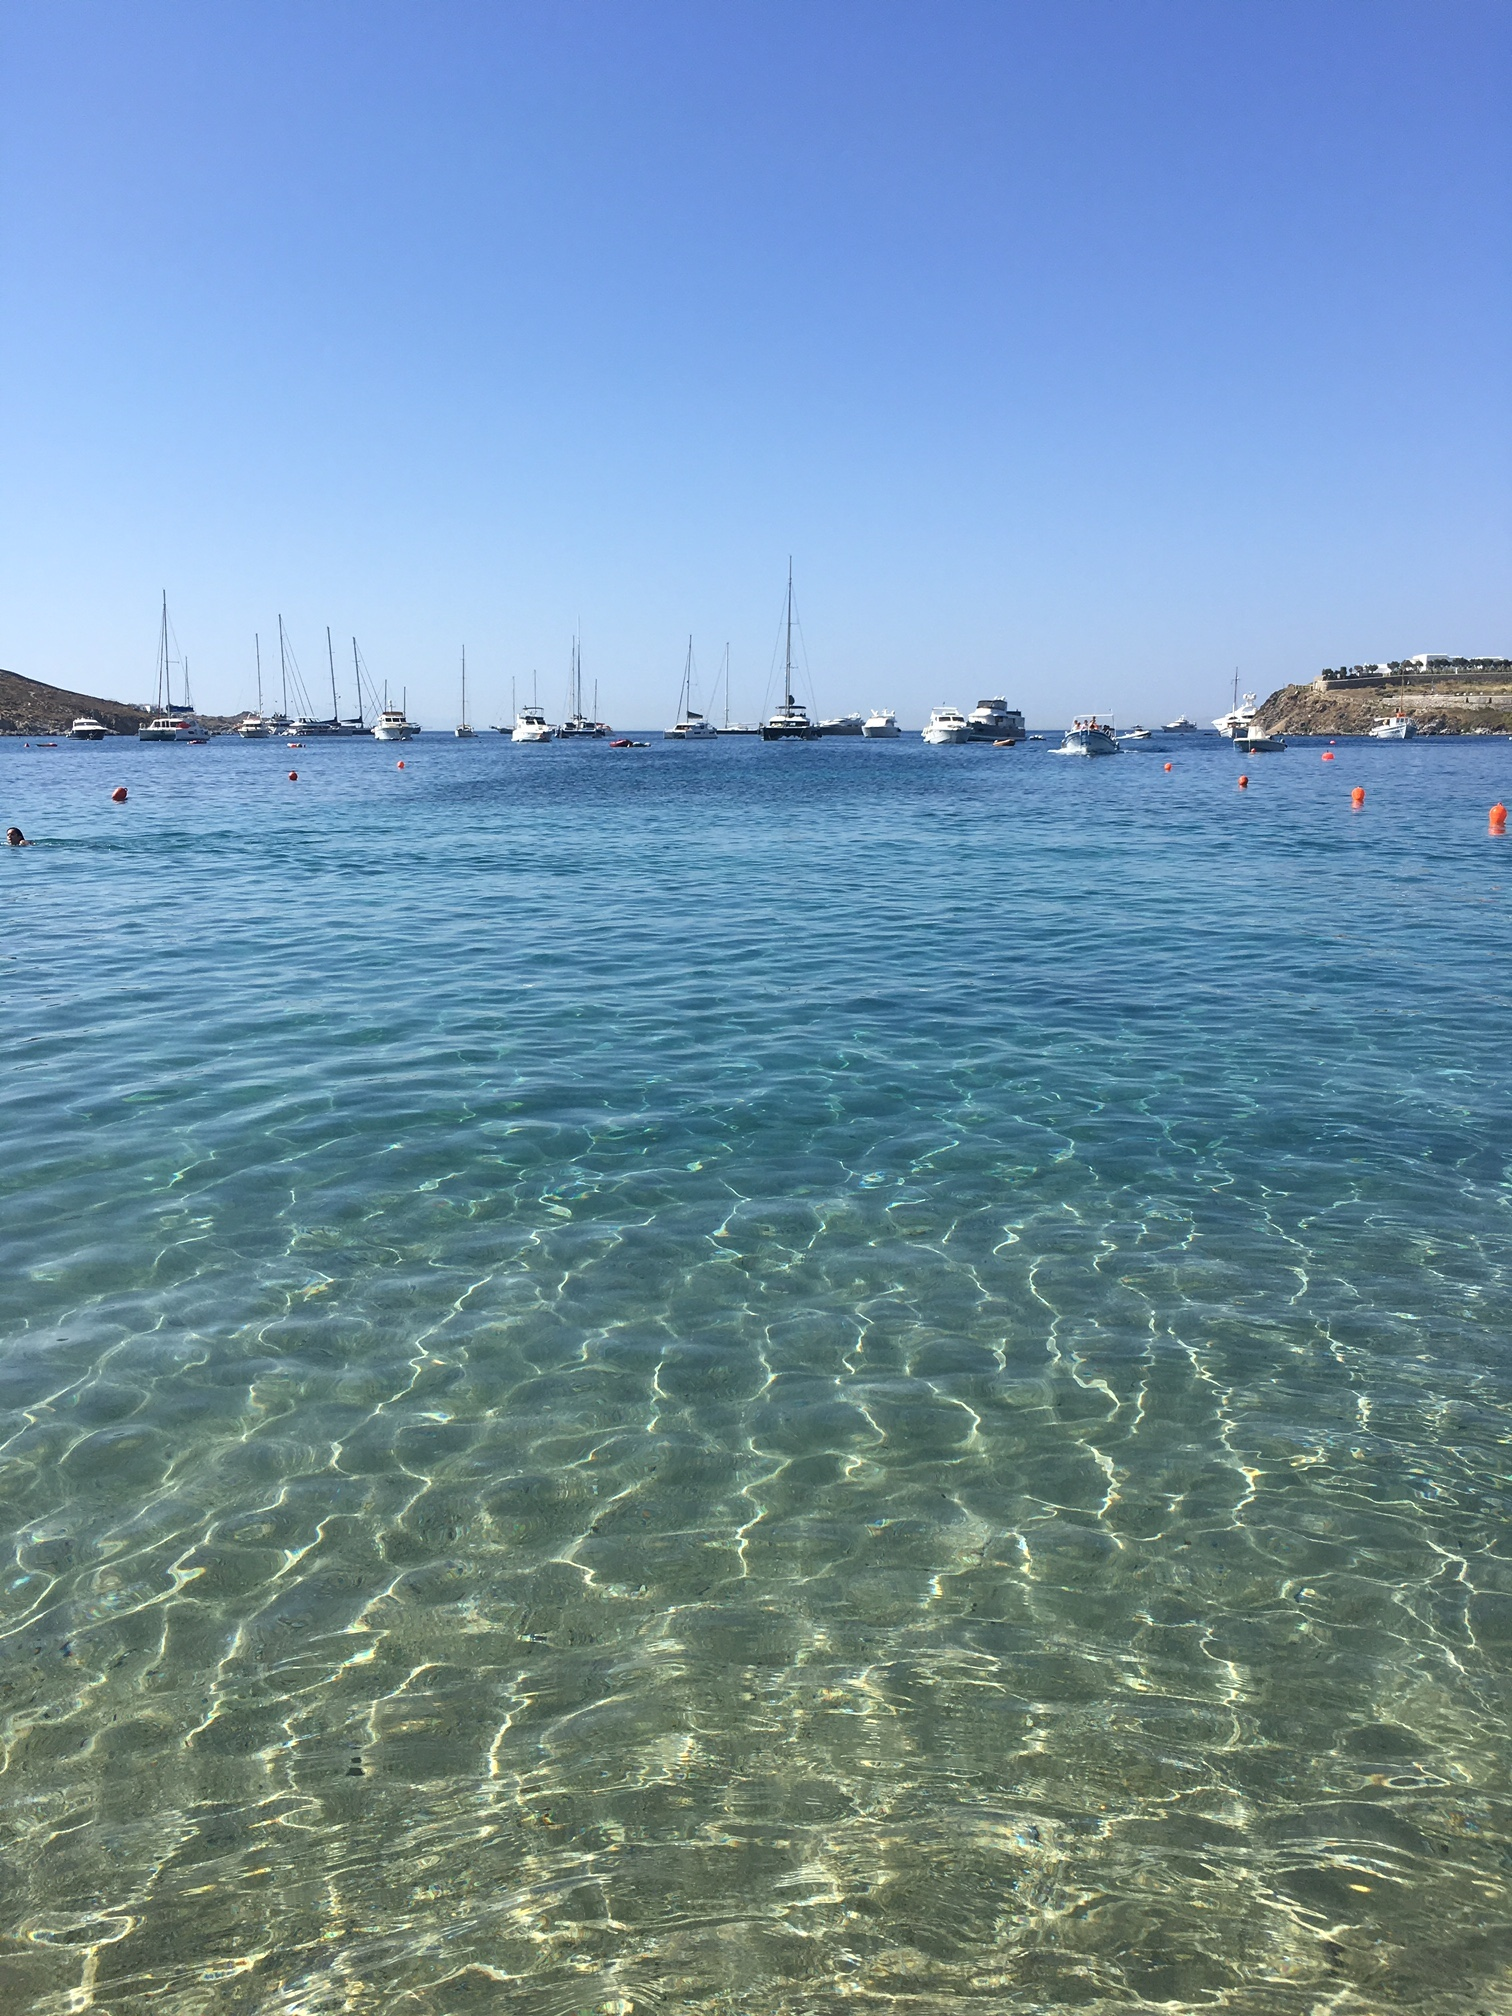 beach, crystal water, blue sky and boats